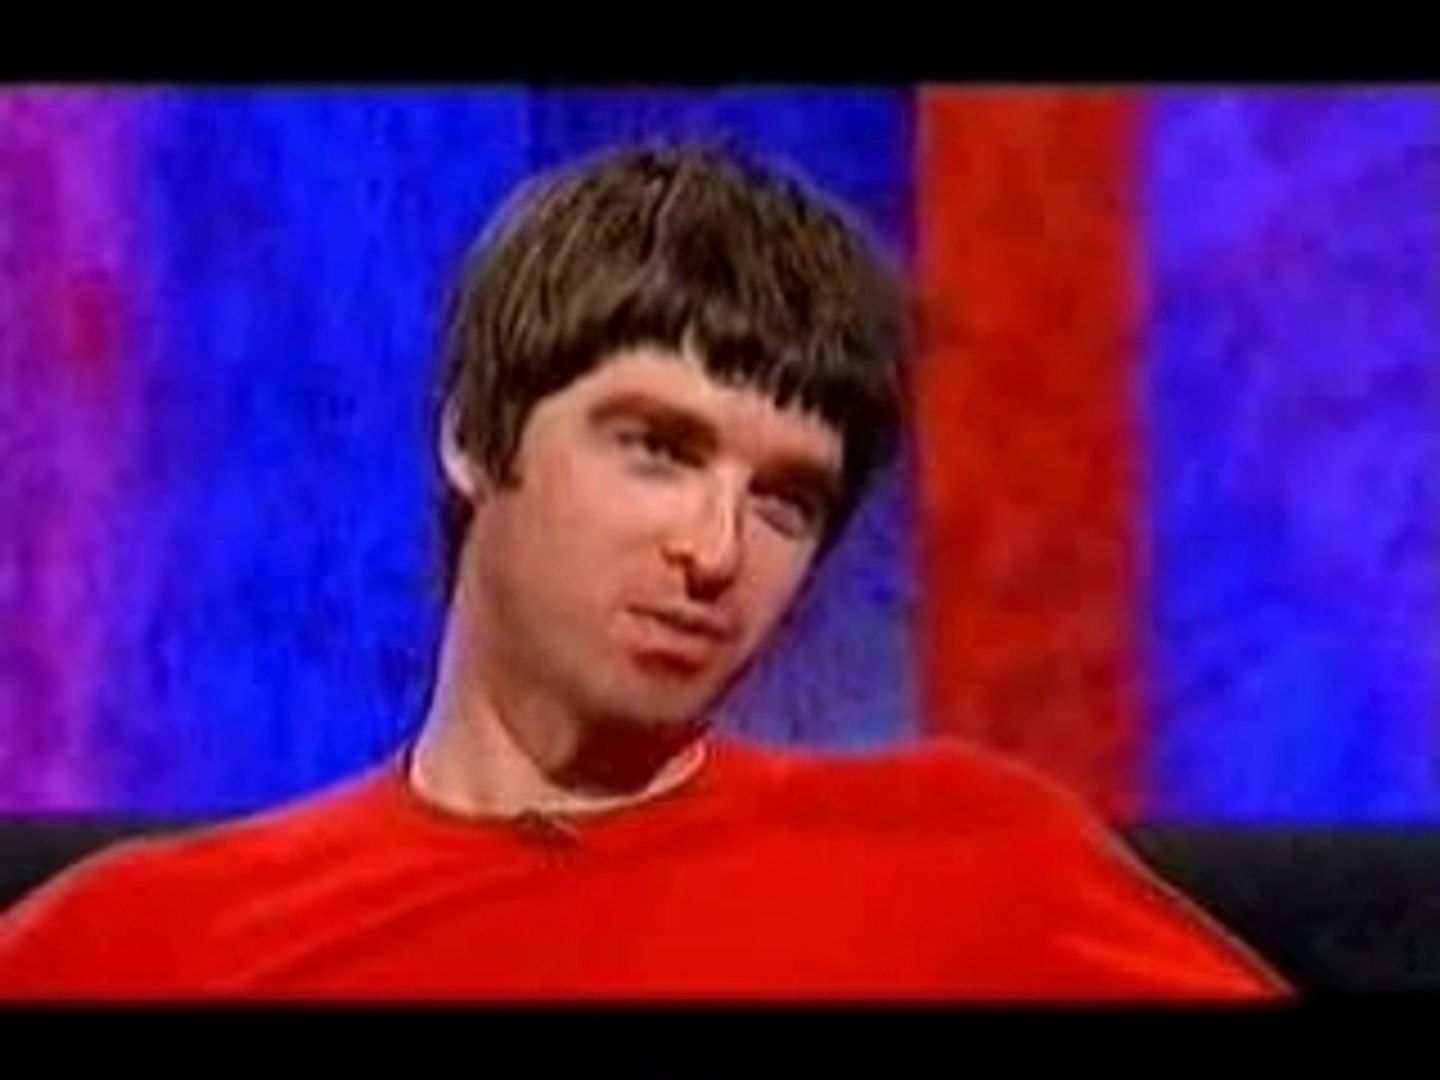 Noel Gallagher Interview - Skinner